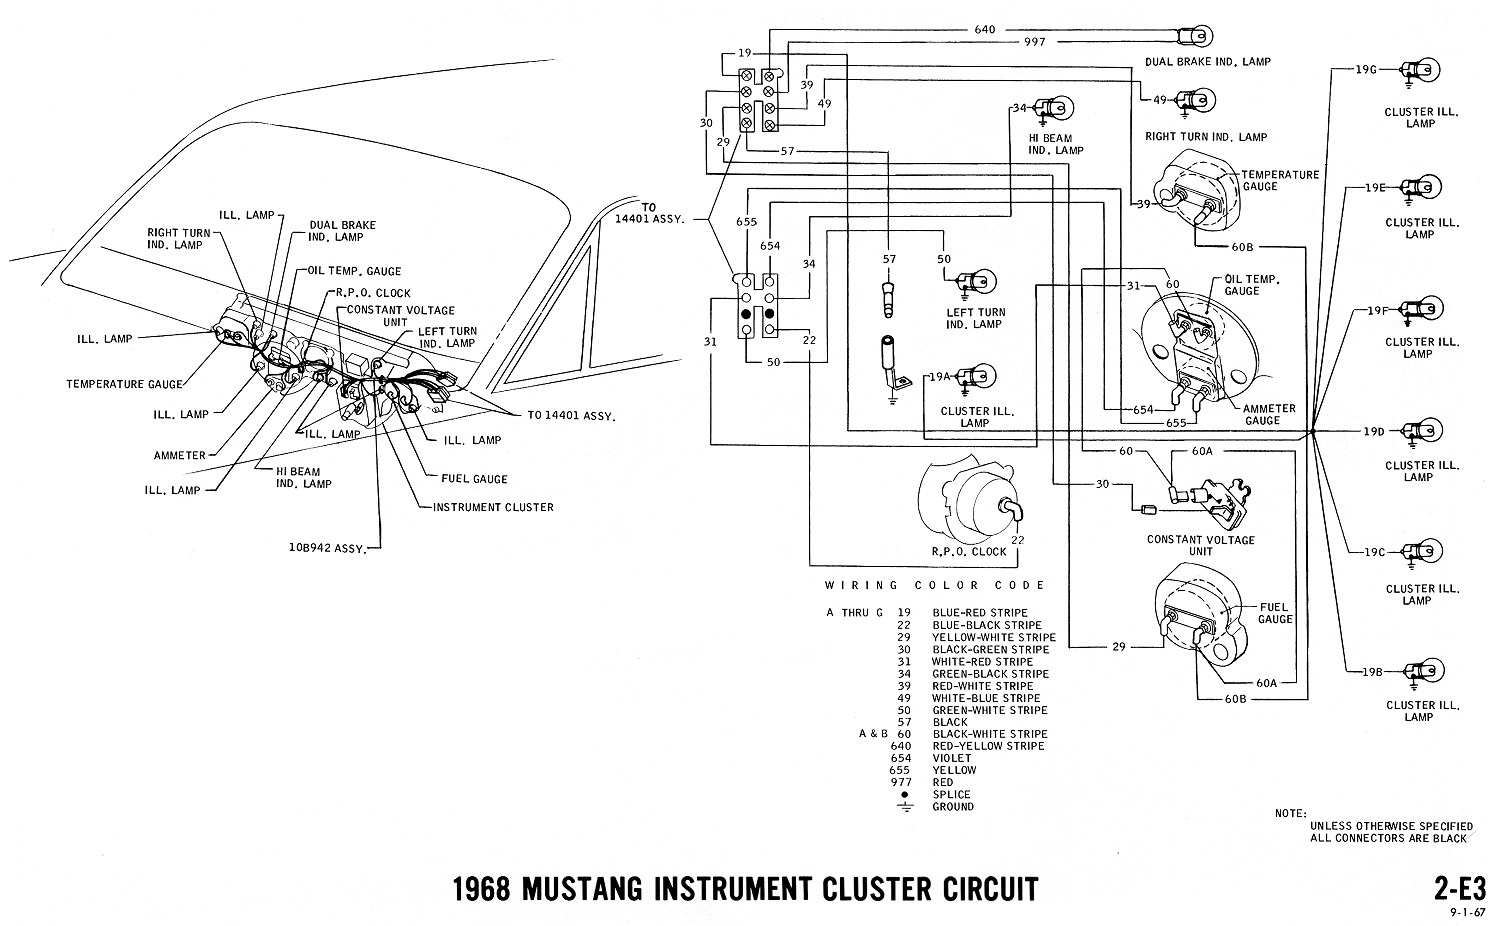 1968 mustang wiring diagram instruments 1970 mustang wiring diagram pdf 1967 mustang wiring diagram pdf 1967 mustang ignition wiring diagram at bayanpartner.co